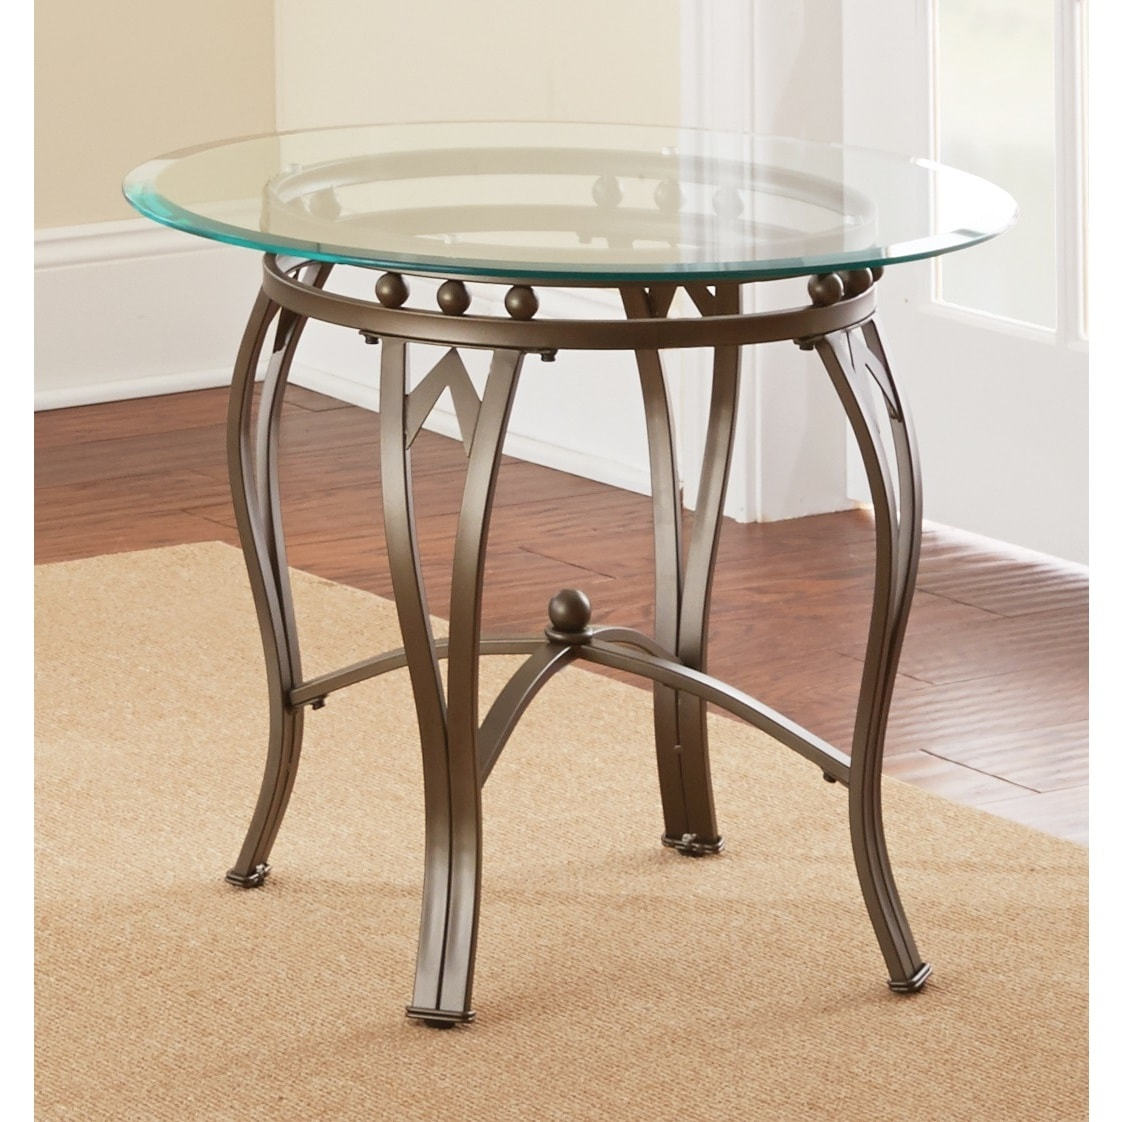 end round med danish modern classic post scandinavian tables designs tibro table wood products